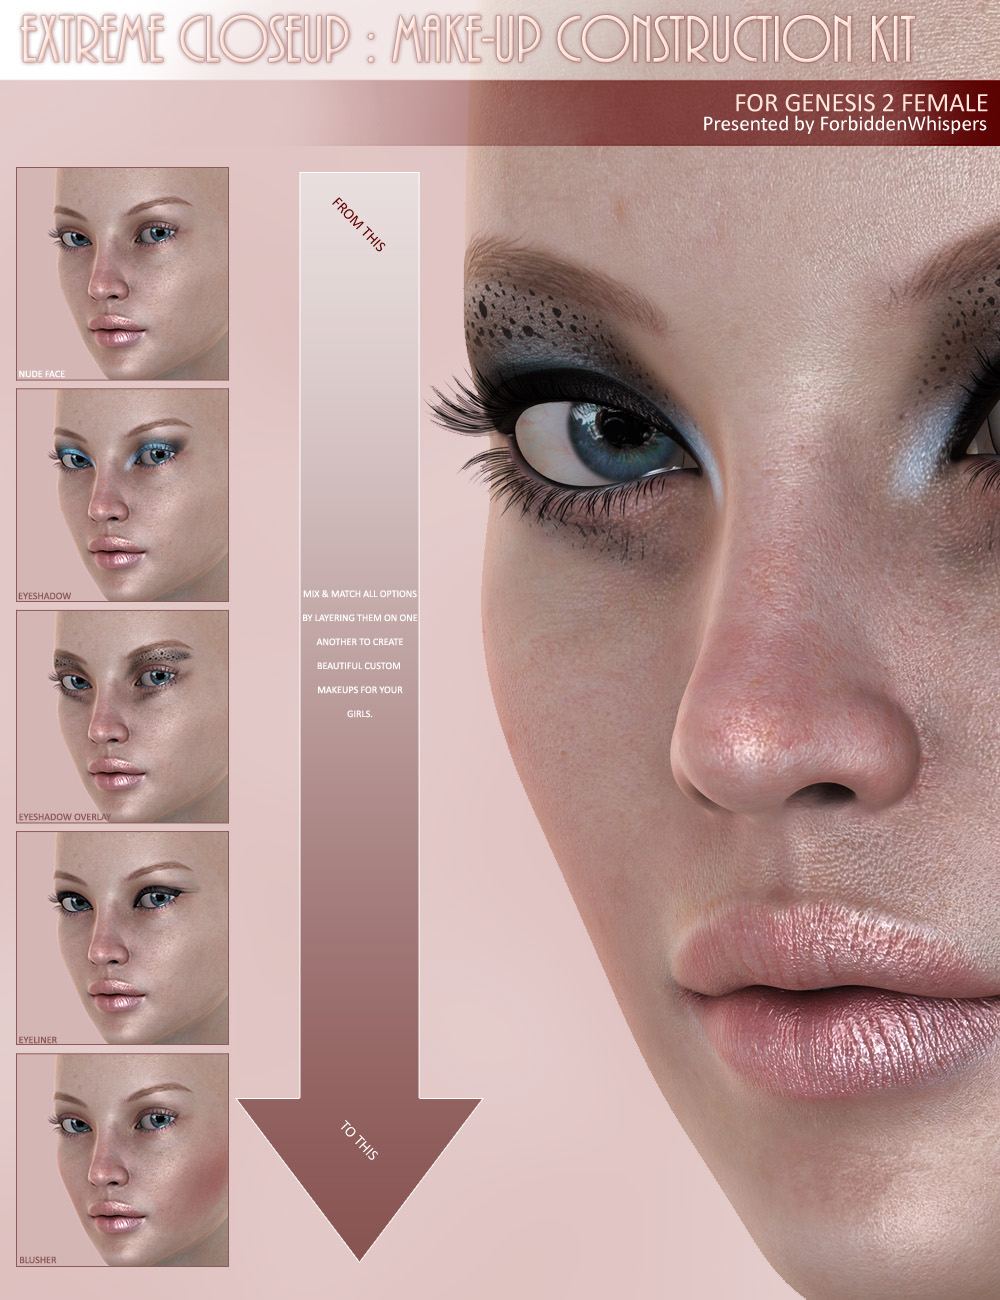 Extreme Closeup: Makeup for Genesis 2 Female(s) by: ForbiddenWhispers, 3D Models by Daz 3D